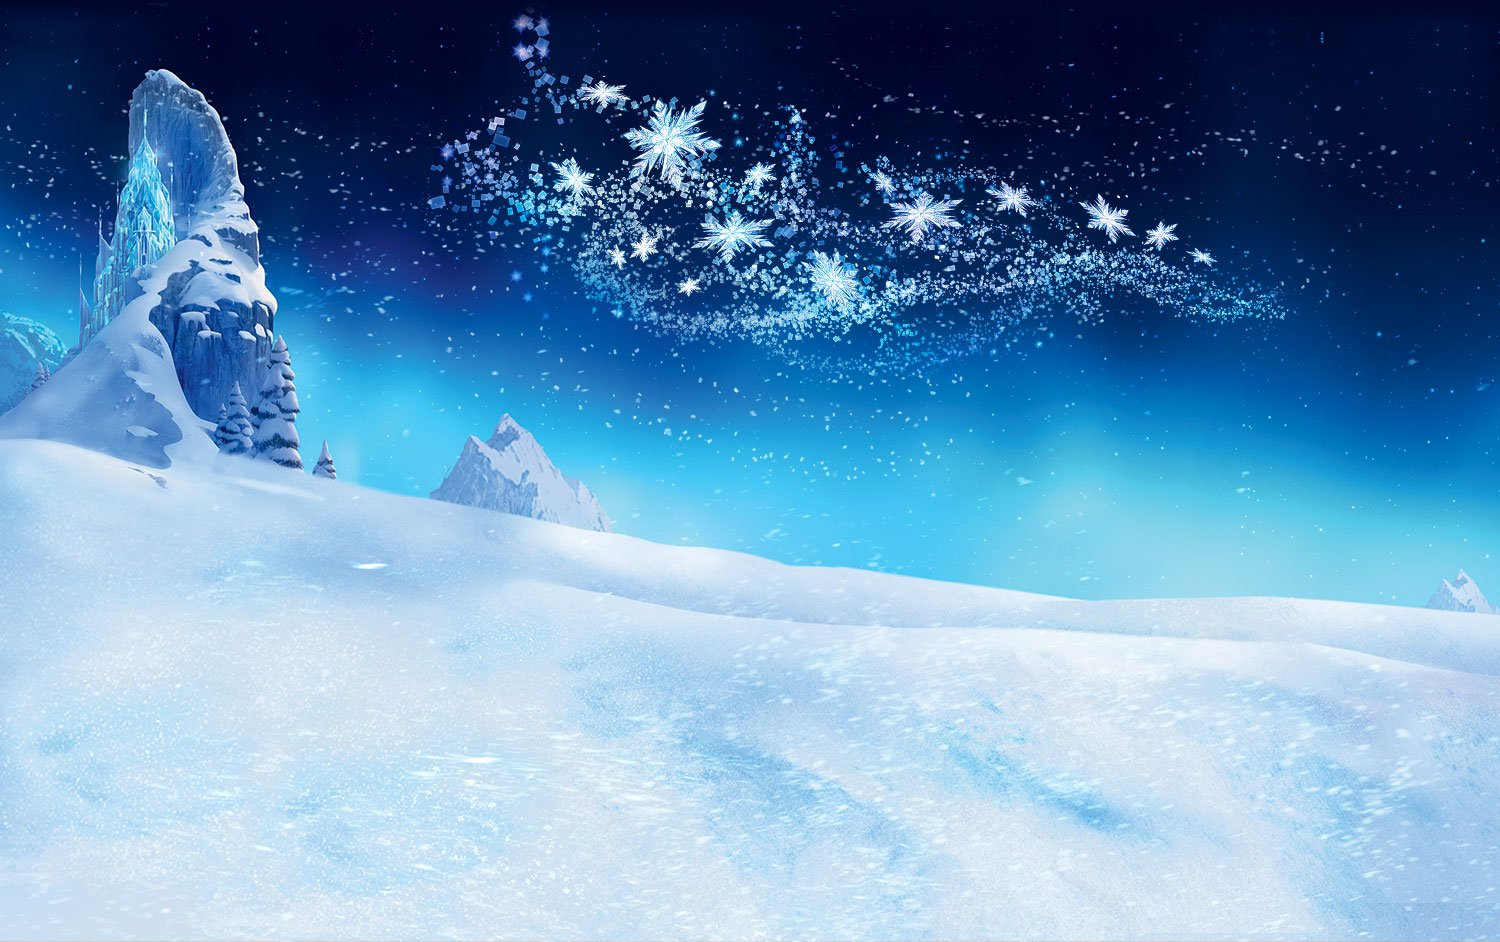 disney frozen wallpaper #5347